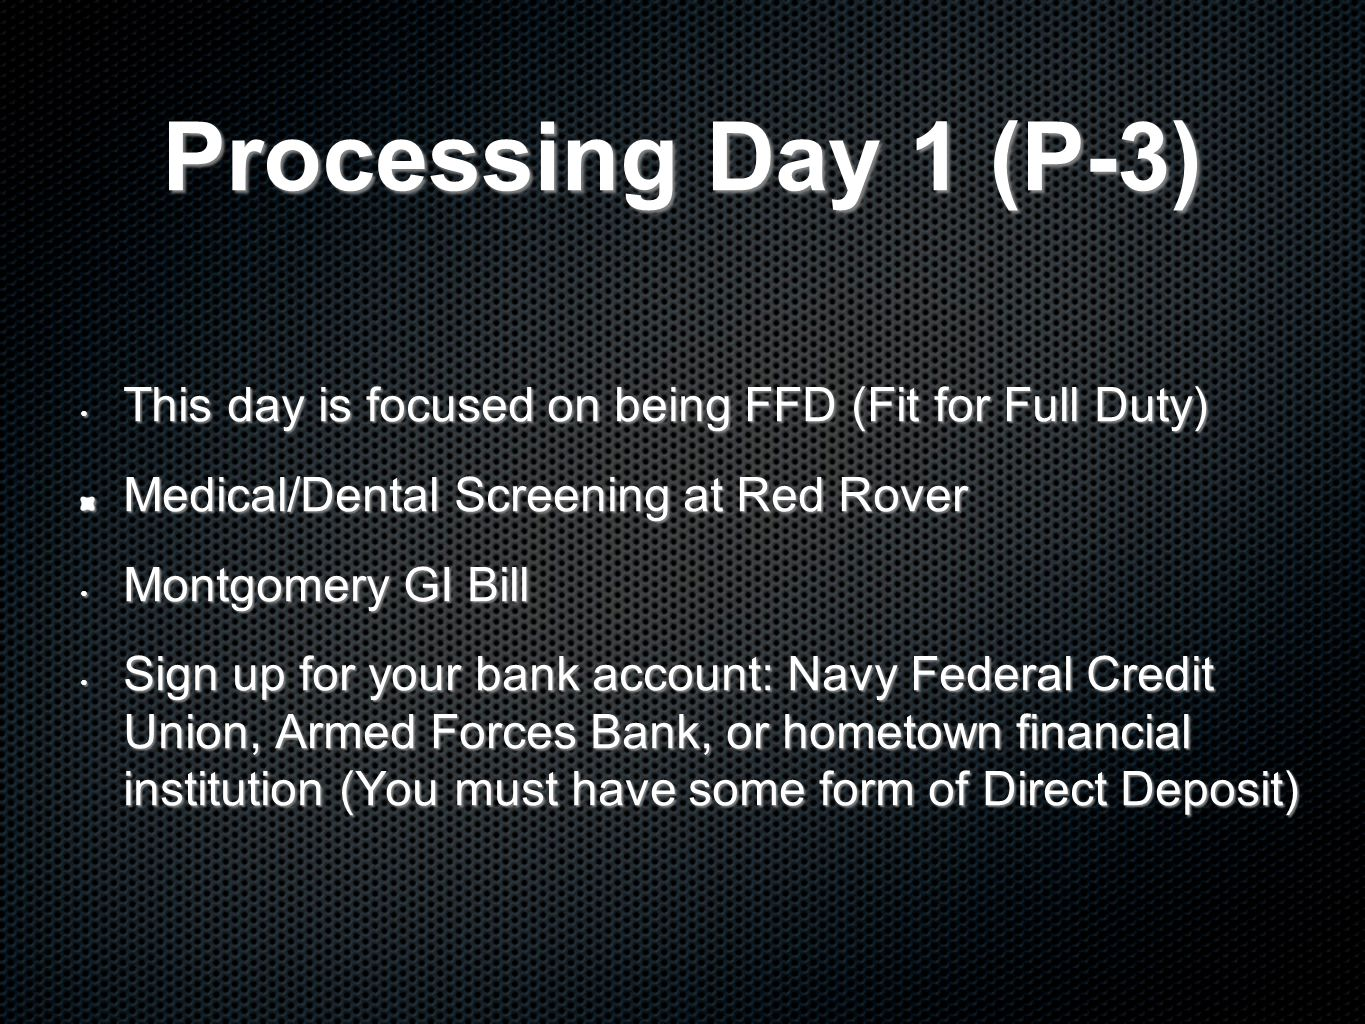 Processing Day 1 (P-3) This day is focused on being FFD (Fit for Full Duty) Medical/Dental Screening at Red Rover.